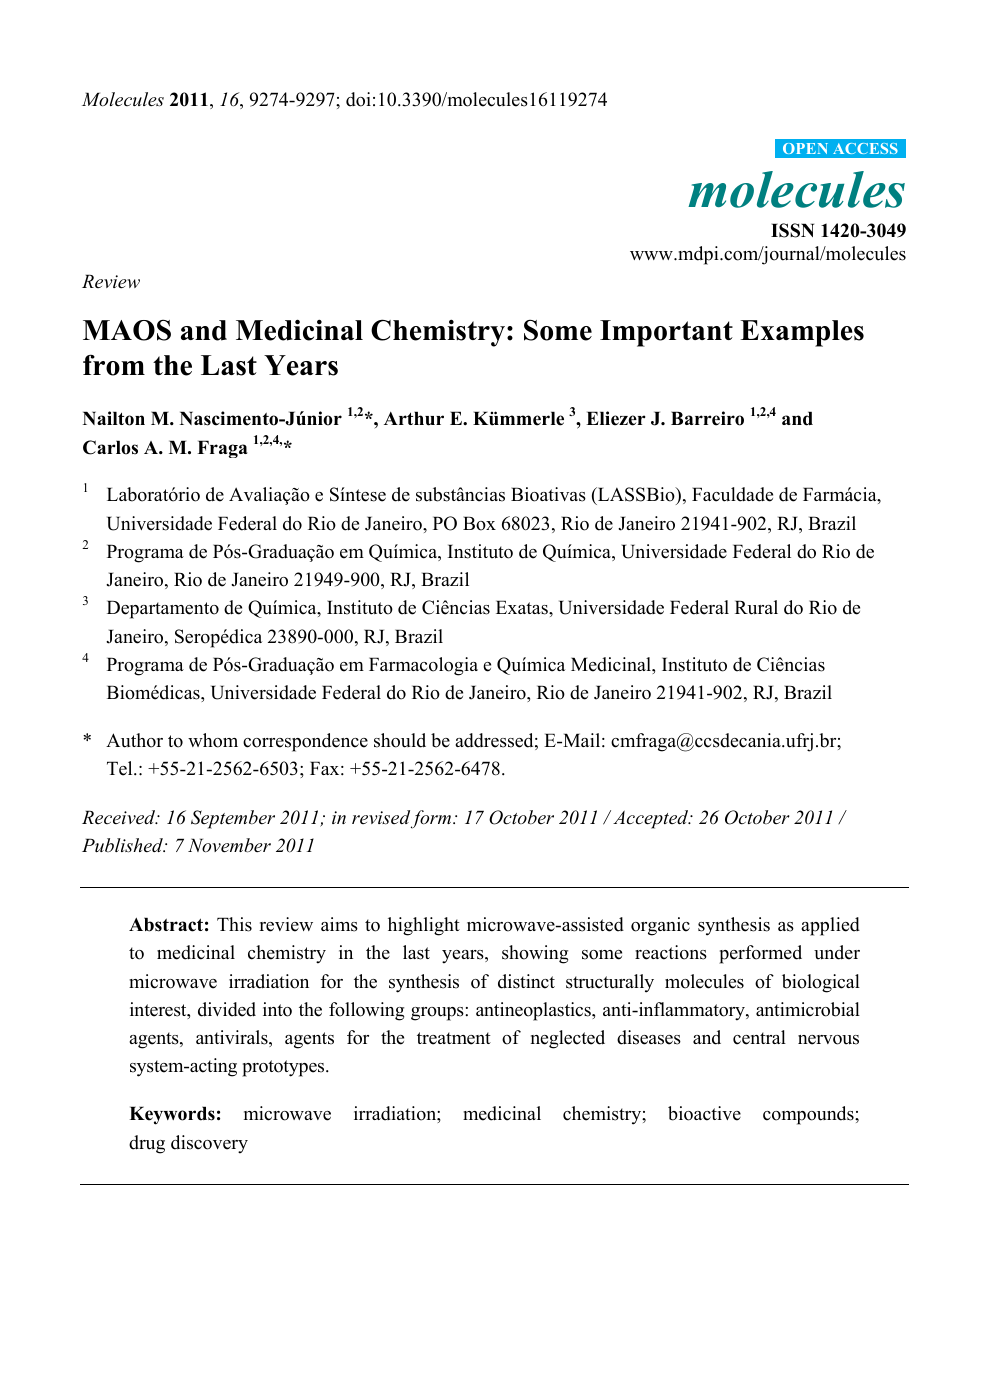 MAOS and Medicinal Chemistry: Some Important Examples from